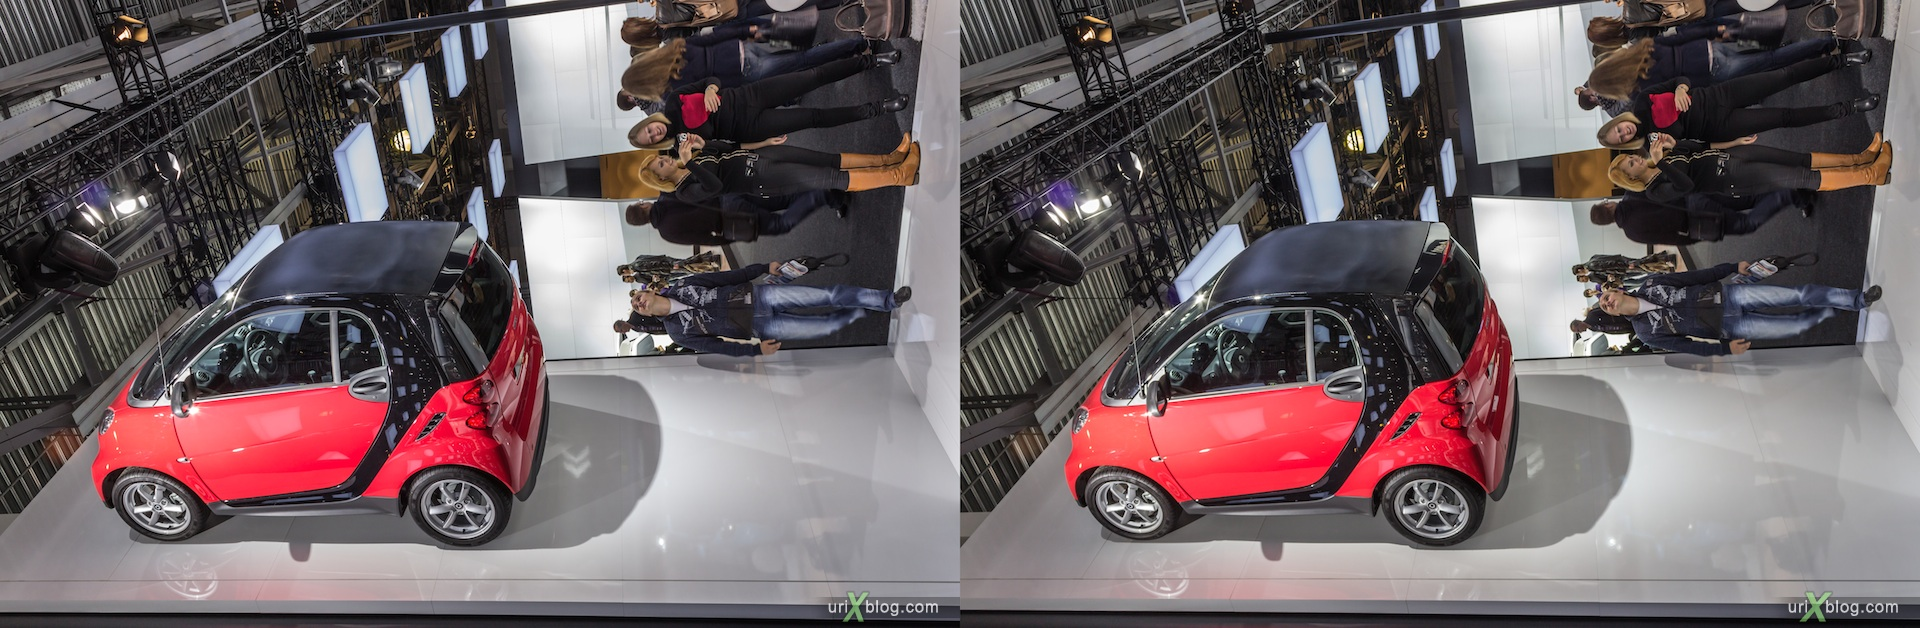 2012, Smart, Moscow International Automobile Salon, auto show, 3D, stereo pair, cross-eyed, crossview